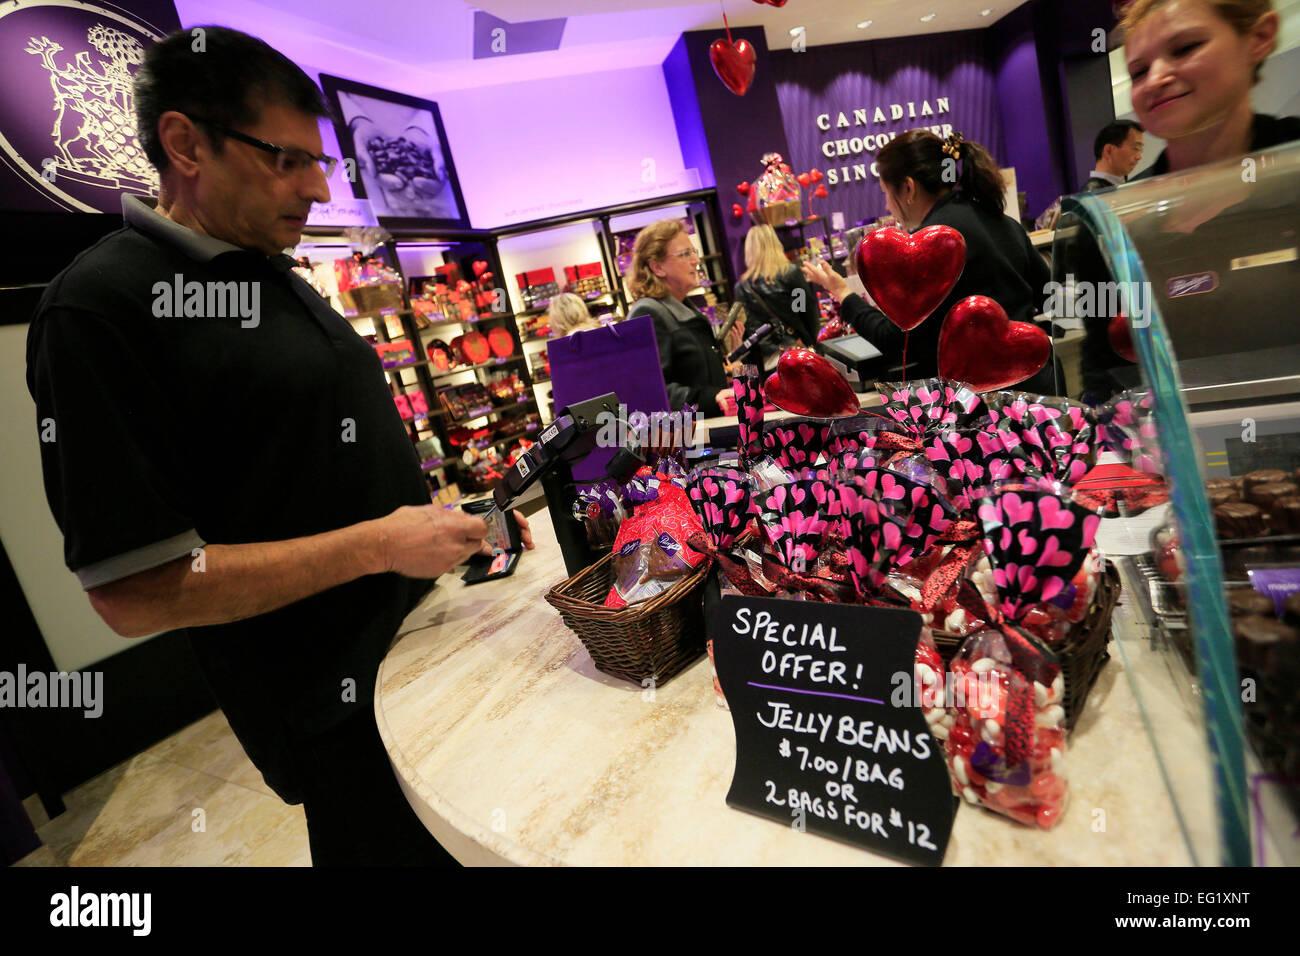 Vancouver, Canada. 13th Feb, 2015. Cutsomers choose chocolates at a candy store in Vancouver, Canada, Feb. 13, 2015. - Stock Image